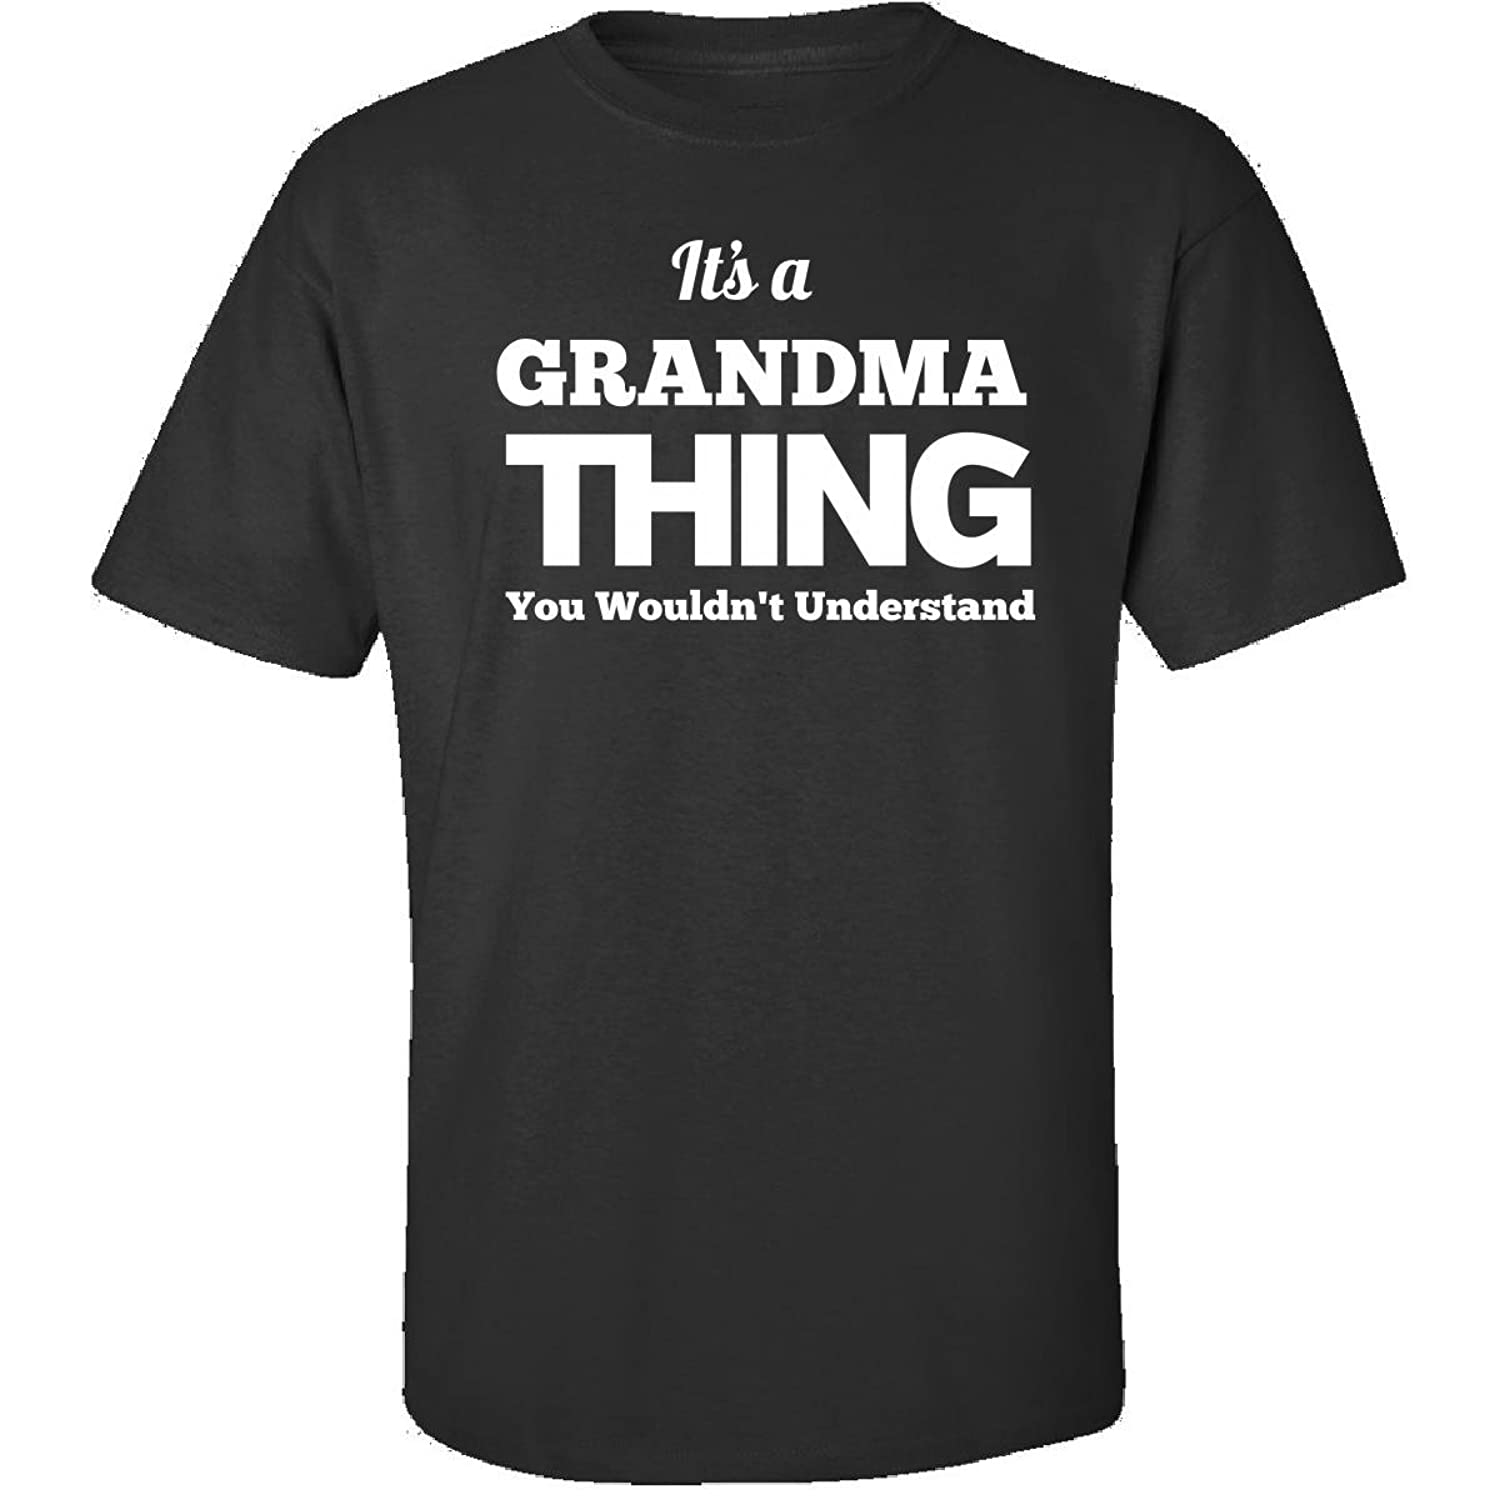 Its A Grandma Thing You Wouldnt Understand - Adult Shirt